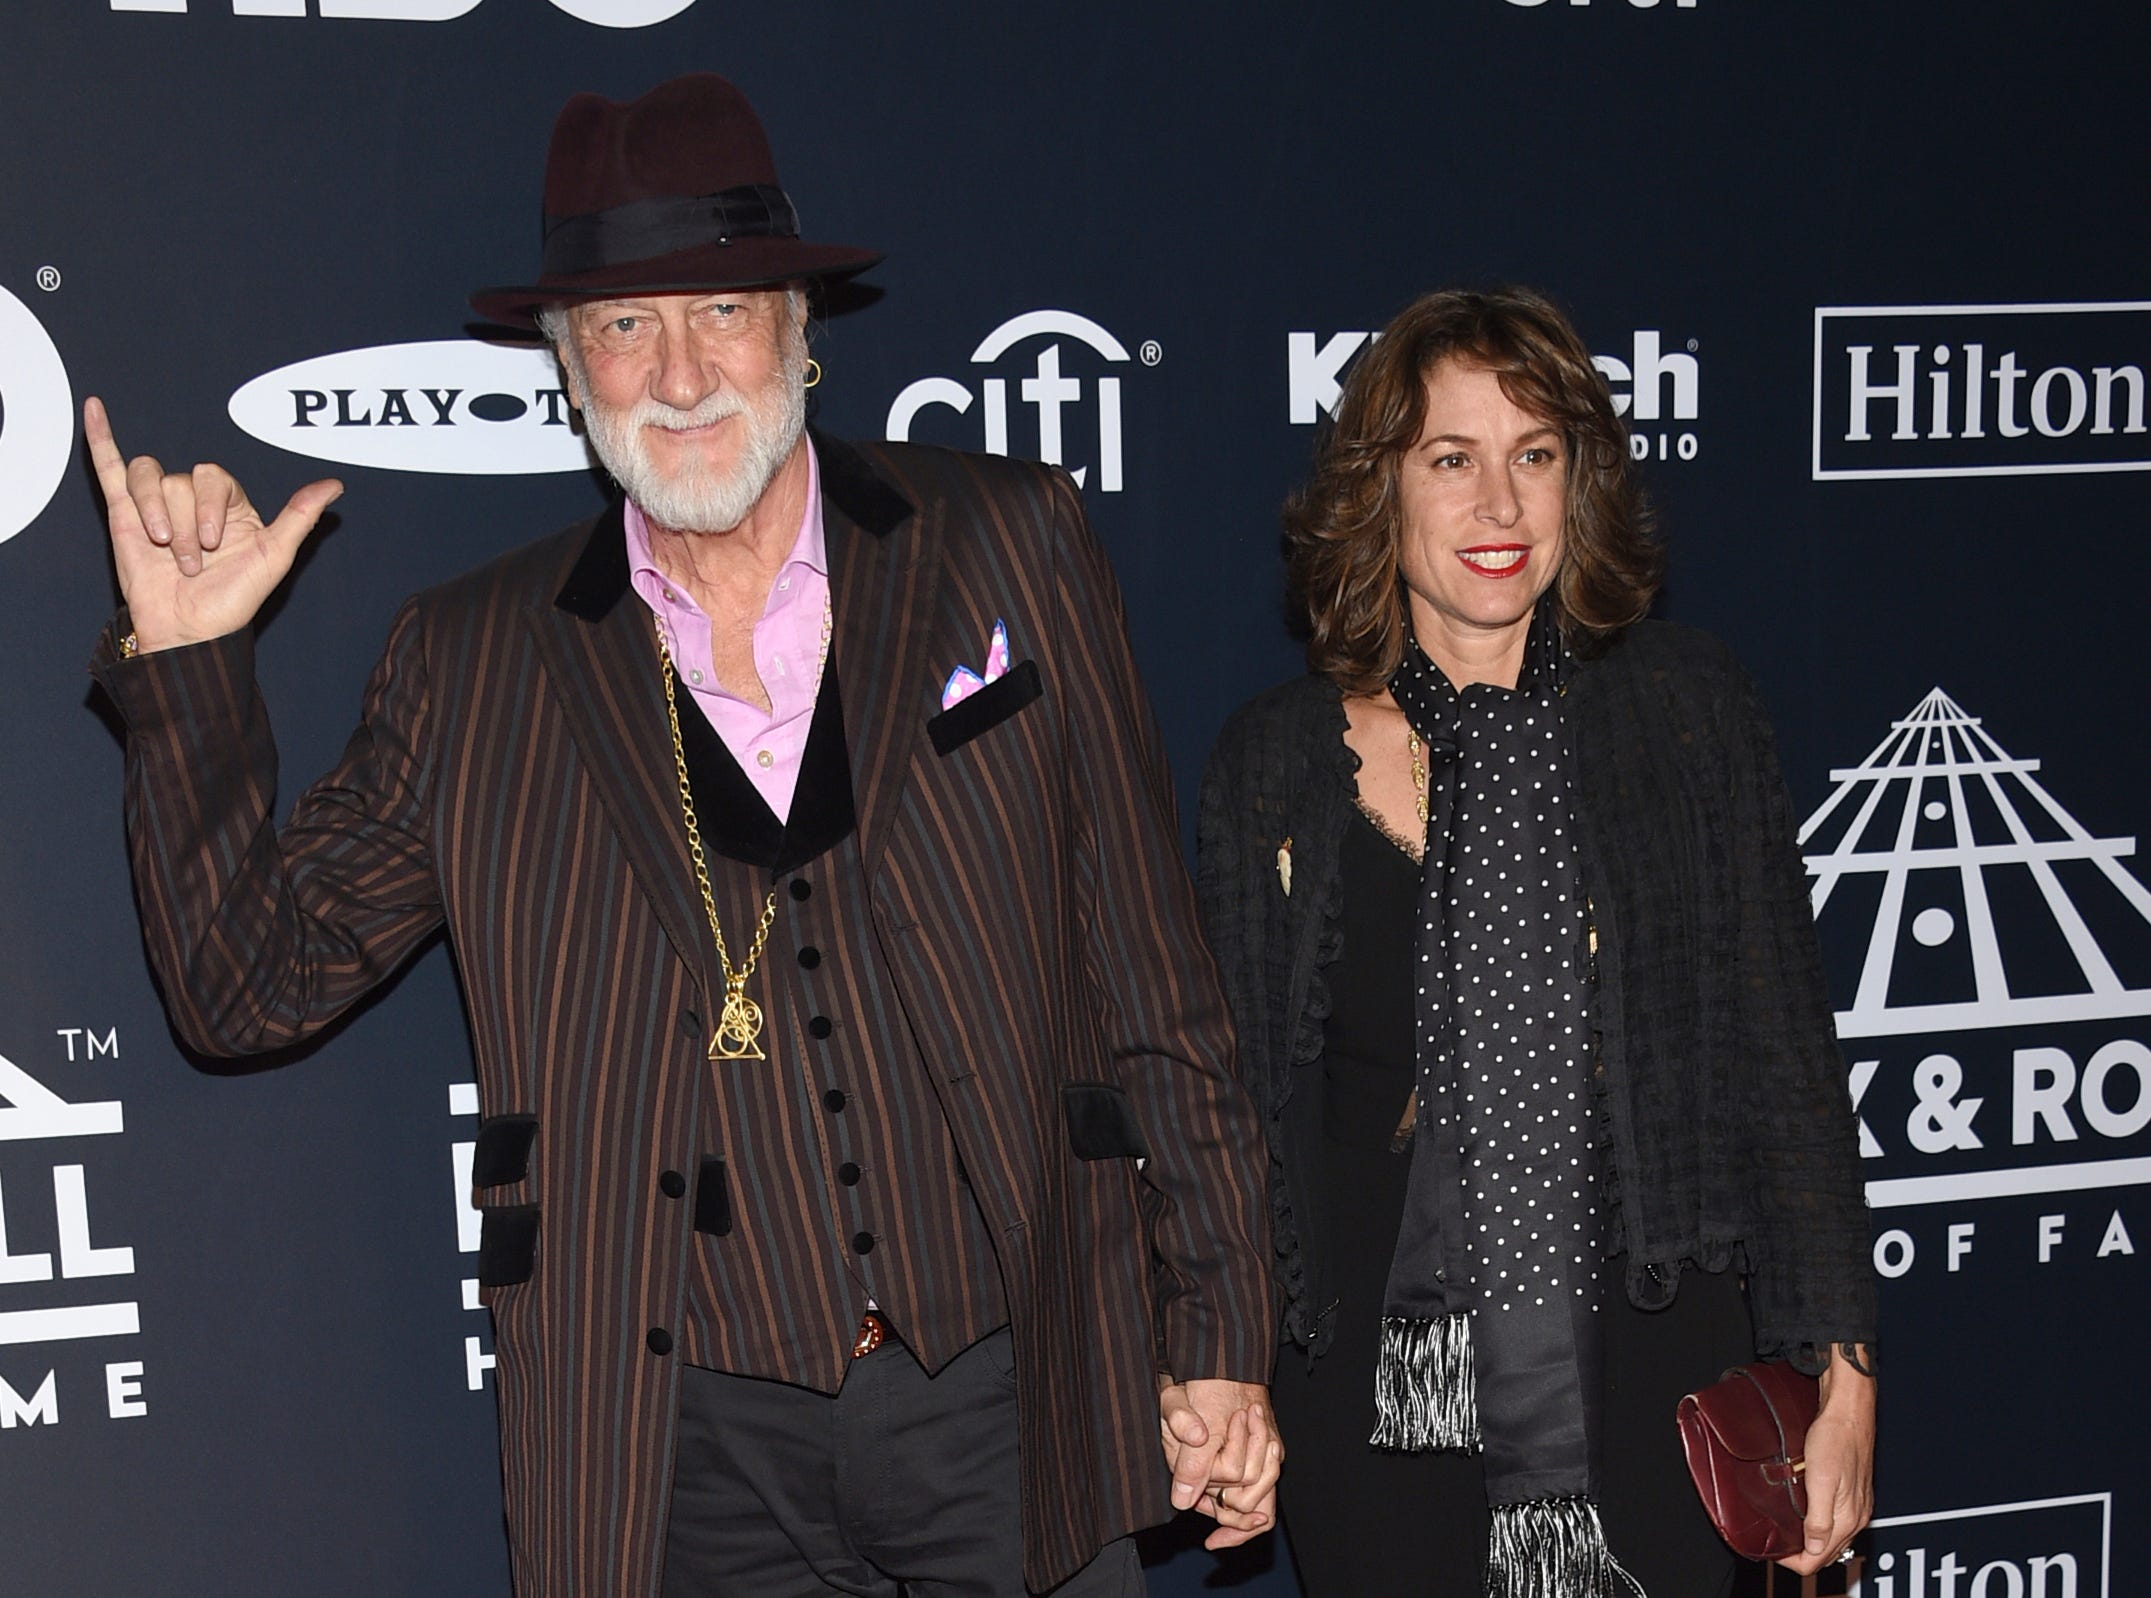 Mick Fleetwood, of Fleetwood Mac, and Chelsea Hill arrive at the Rock & Roll Hall of Fame induction ceremony at the Barclays Center on Friday, March 29, 2019, in New York. (Photo by Evan Agostini/Invision/AP) ORG XMIT: NYPM119